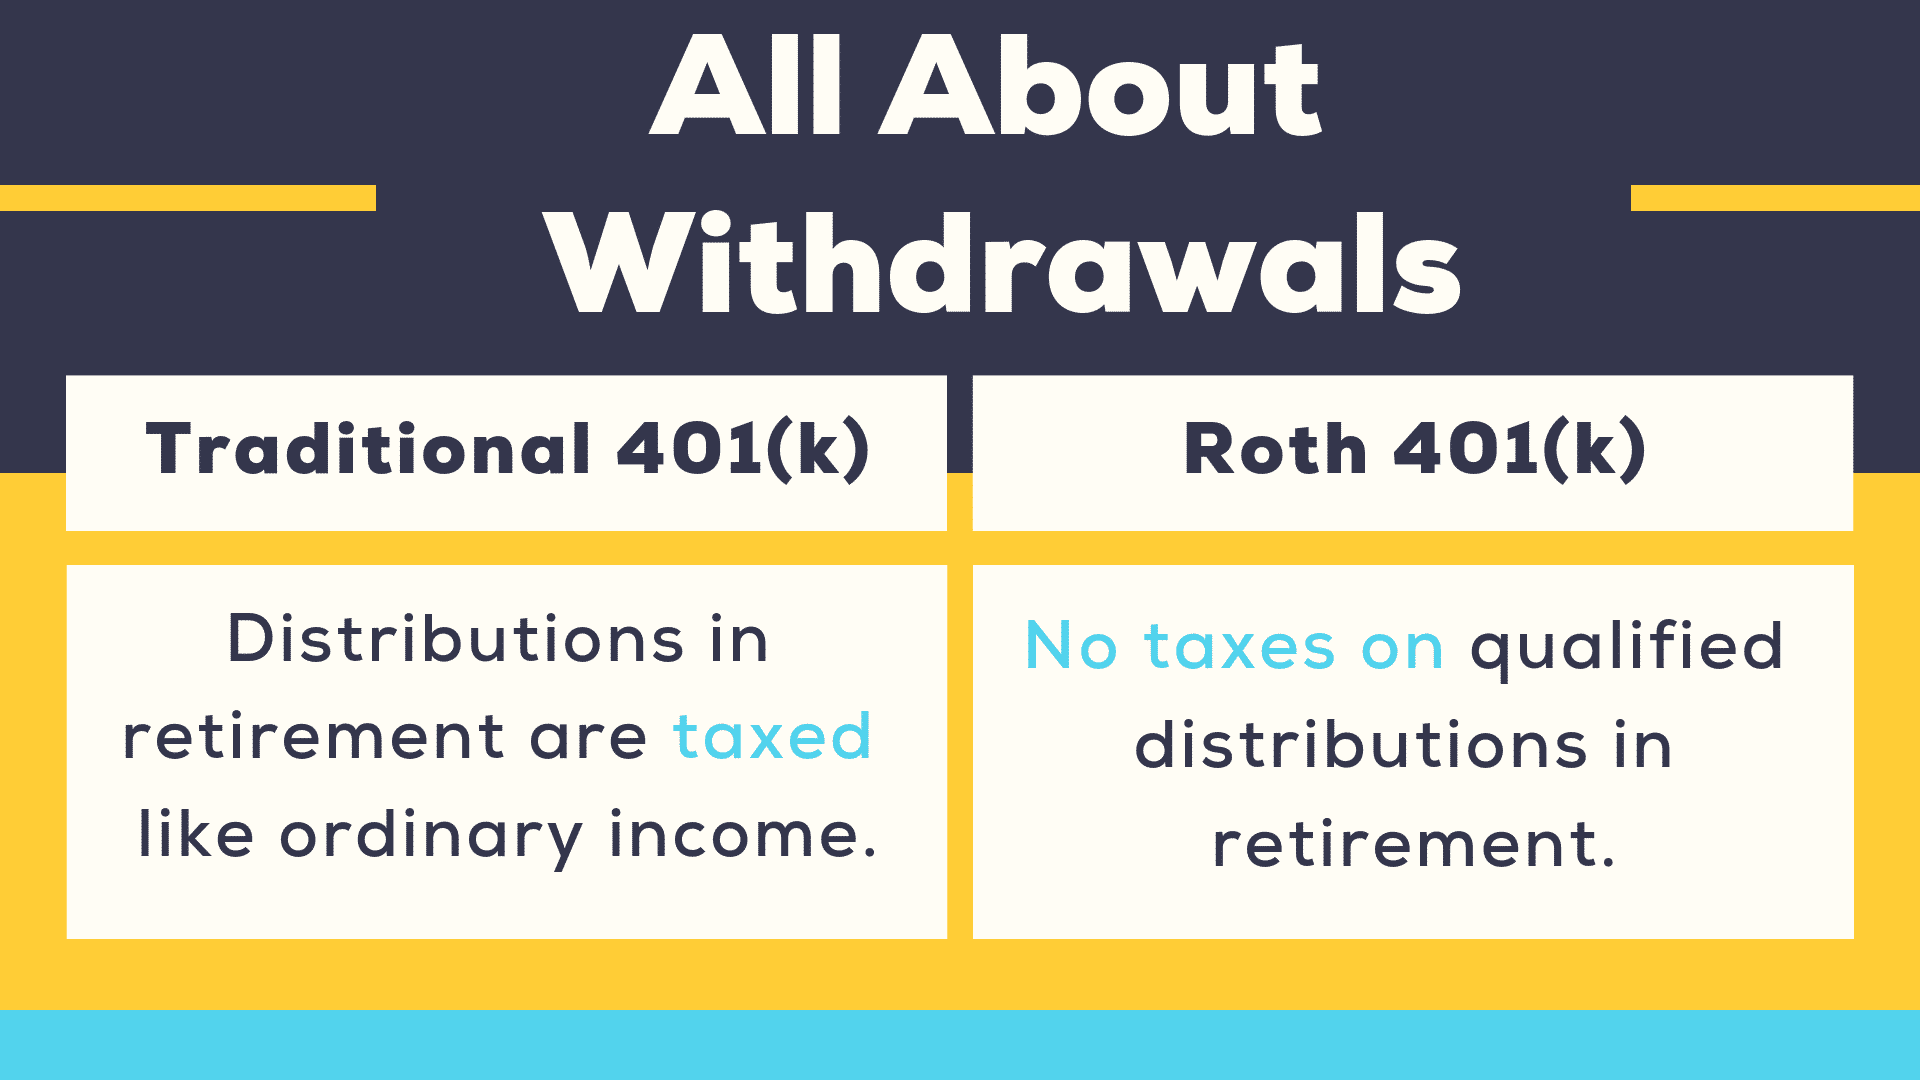 All About Withdrawals: In a traditional 401(k) distributions in retirement are taxed, just like ordinary income. In a Roth 401(k) there are no taxes on qualified distributions in retirement.